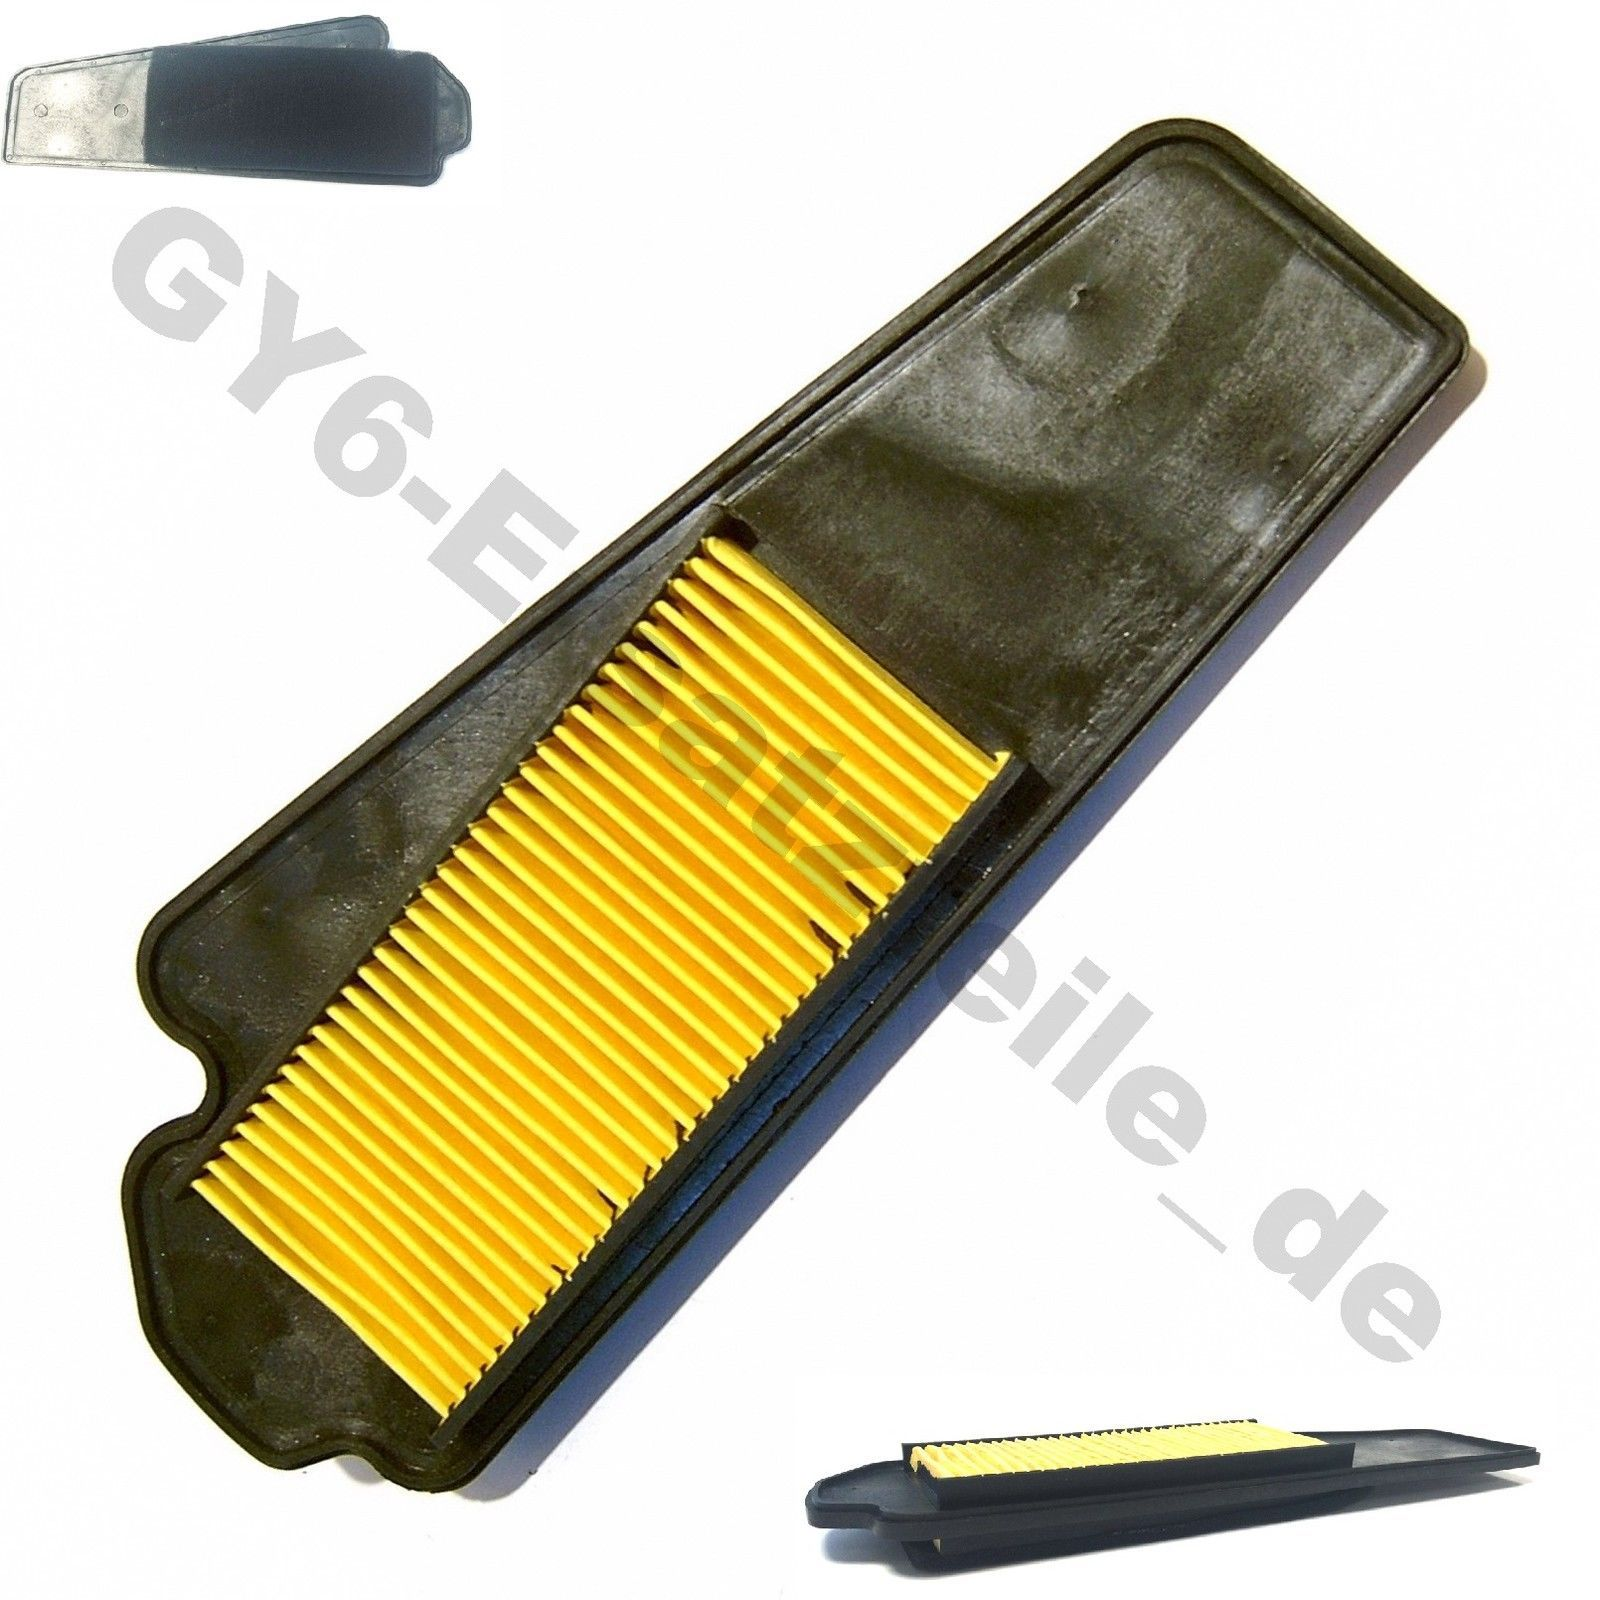 Air Filter Cleaner Element Gy6 Chinese Scooter Moped Atv Yiben Jonway Taotao Bms Chinese Scooters Scooter Air Filter